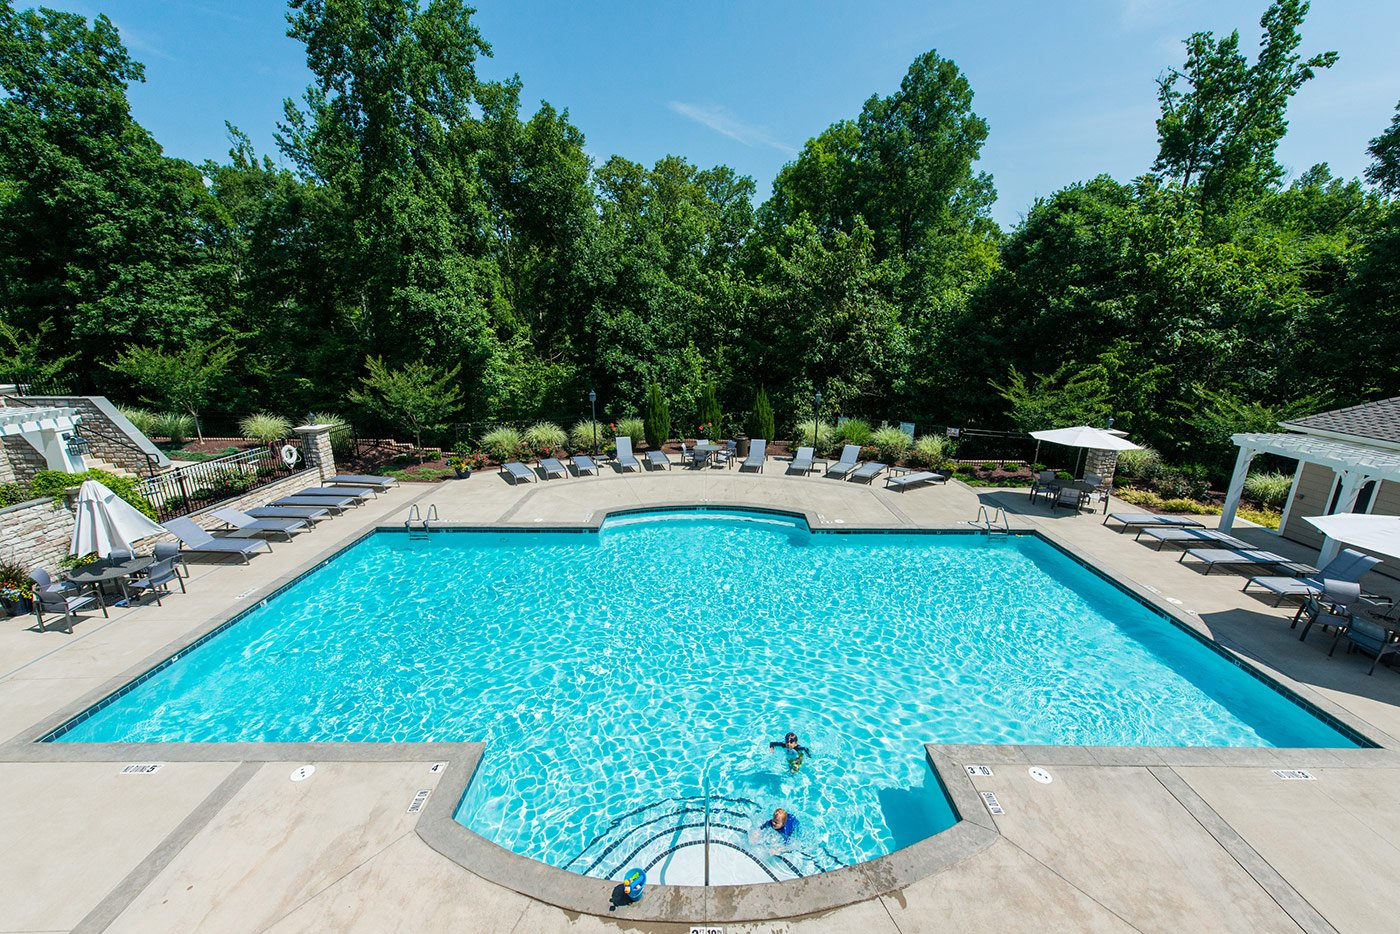 The pool at the Hamptons Clubhouse